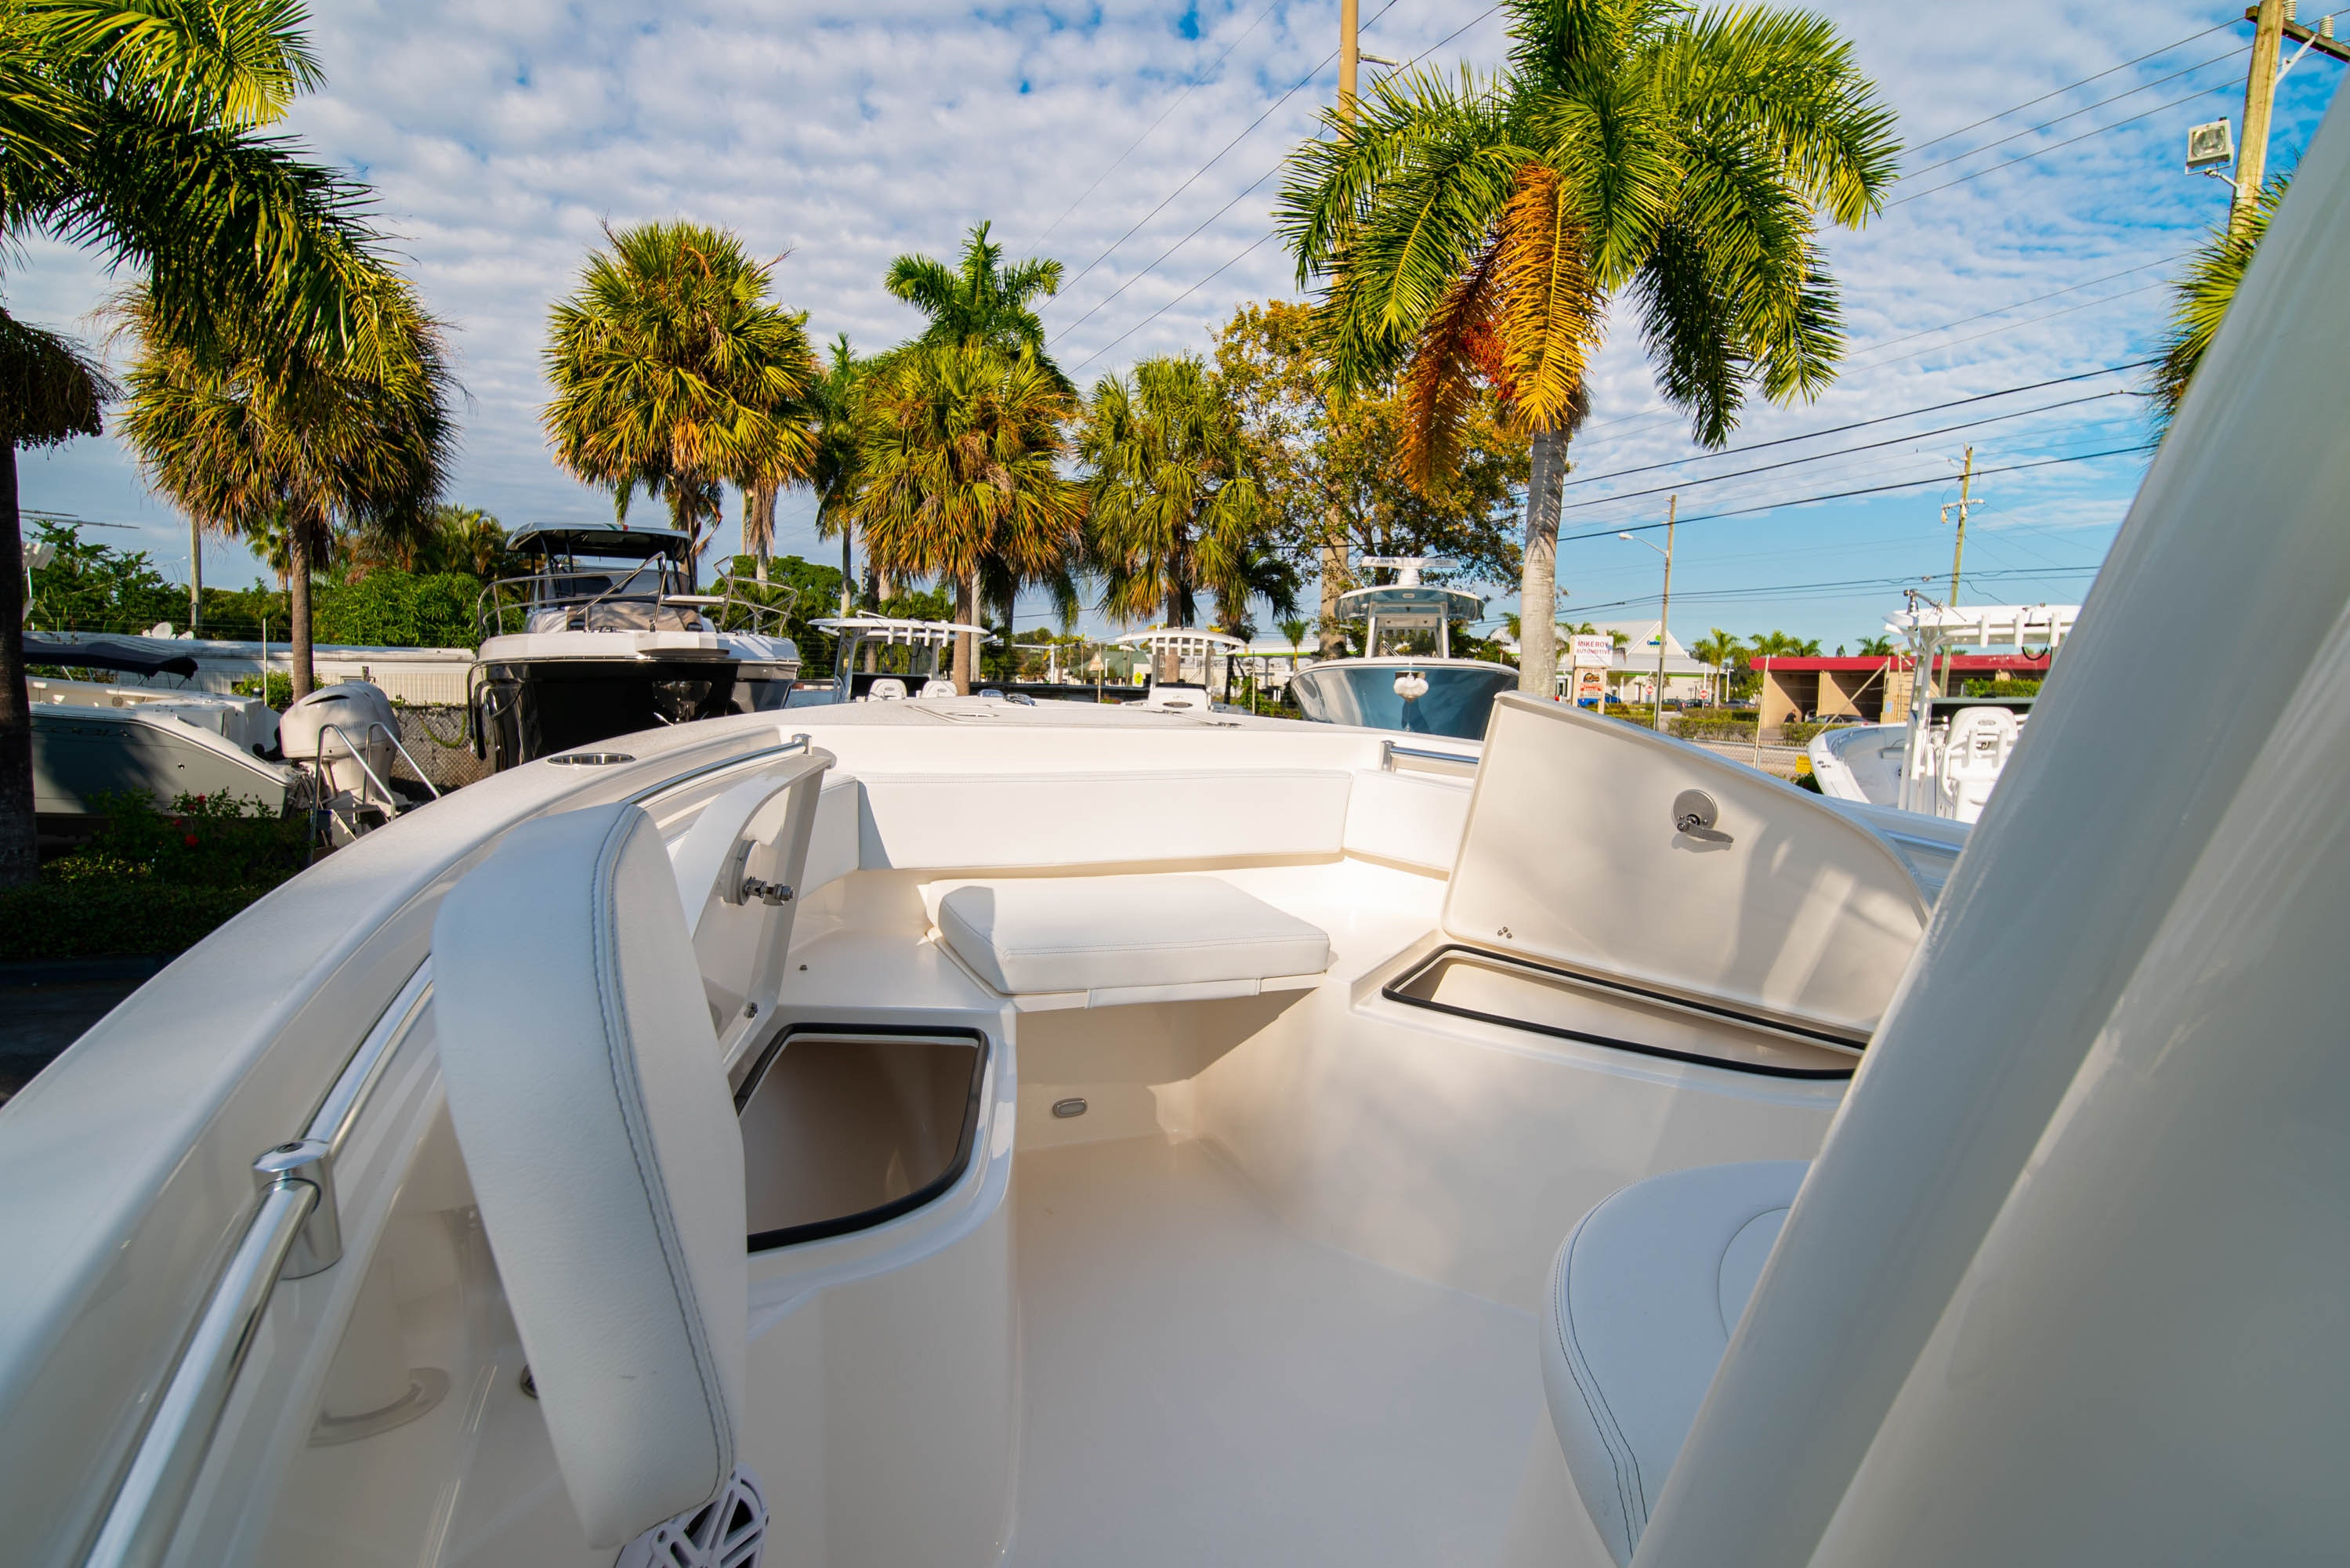 Thumbnail 35 for New 2020 Cobia 220 CC boat for sale in West Palm Beach, FL